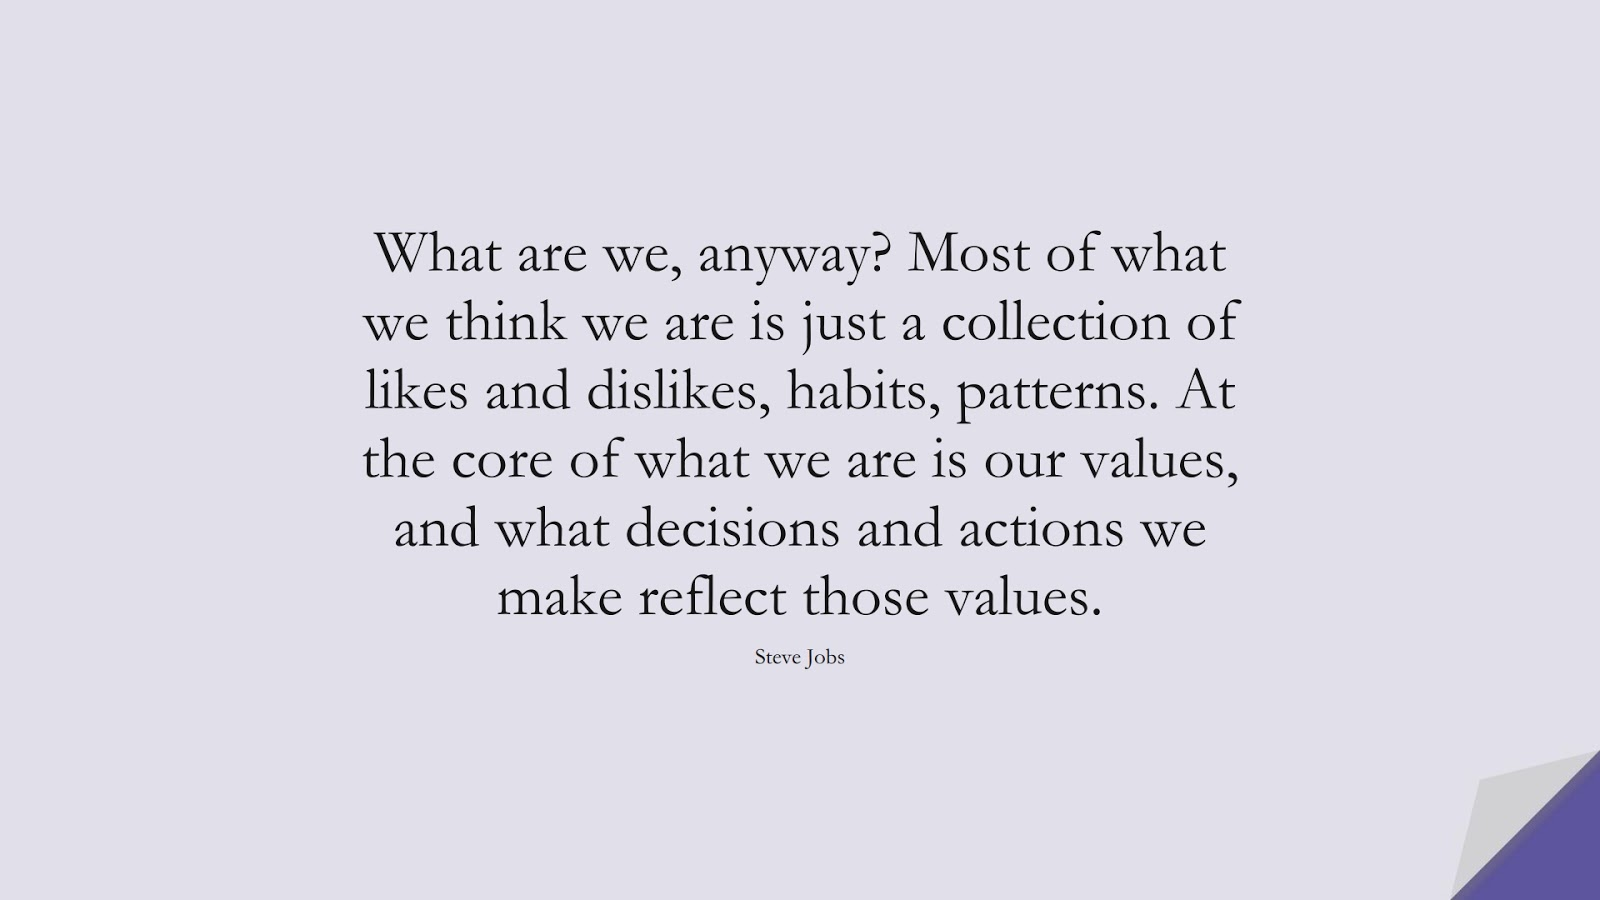 What are we, anyway? Most of what we think we are is just a collection of likes and dislikes, habits, patterns. At the core of what we are is our values, and what decisions and actions we make reflect those values. (Steve Jobs);  #SteveJobsQuotes